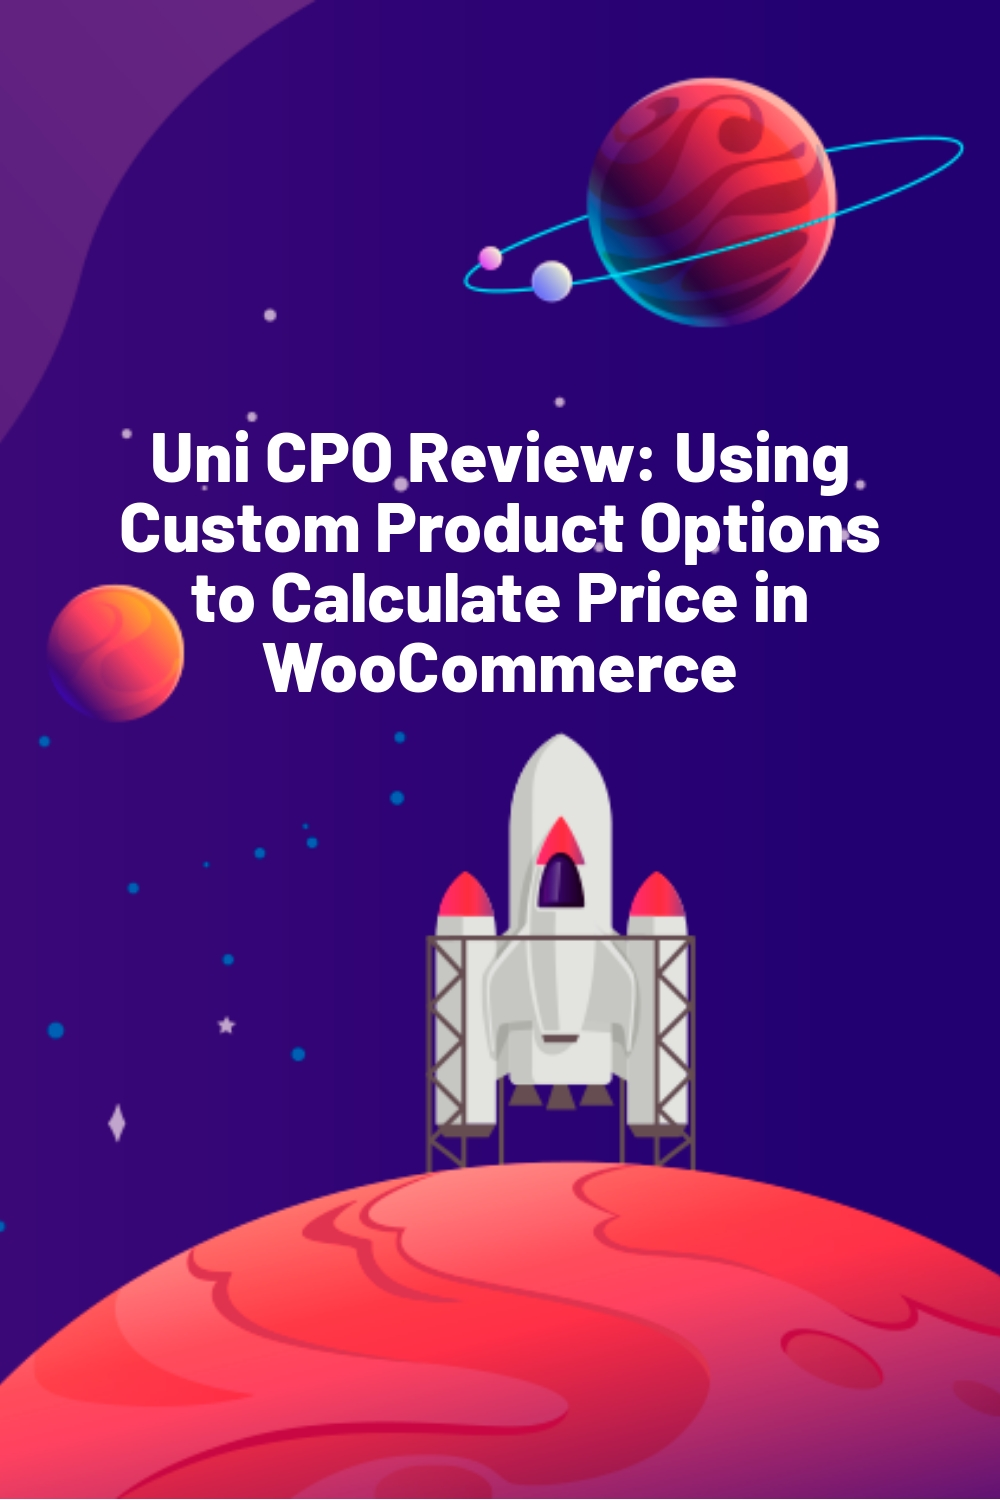 Uni CPO Review: Using Custom Product Options to Calculate Price in WooCommerce